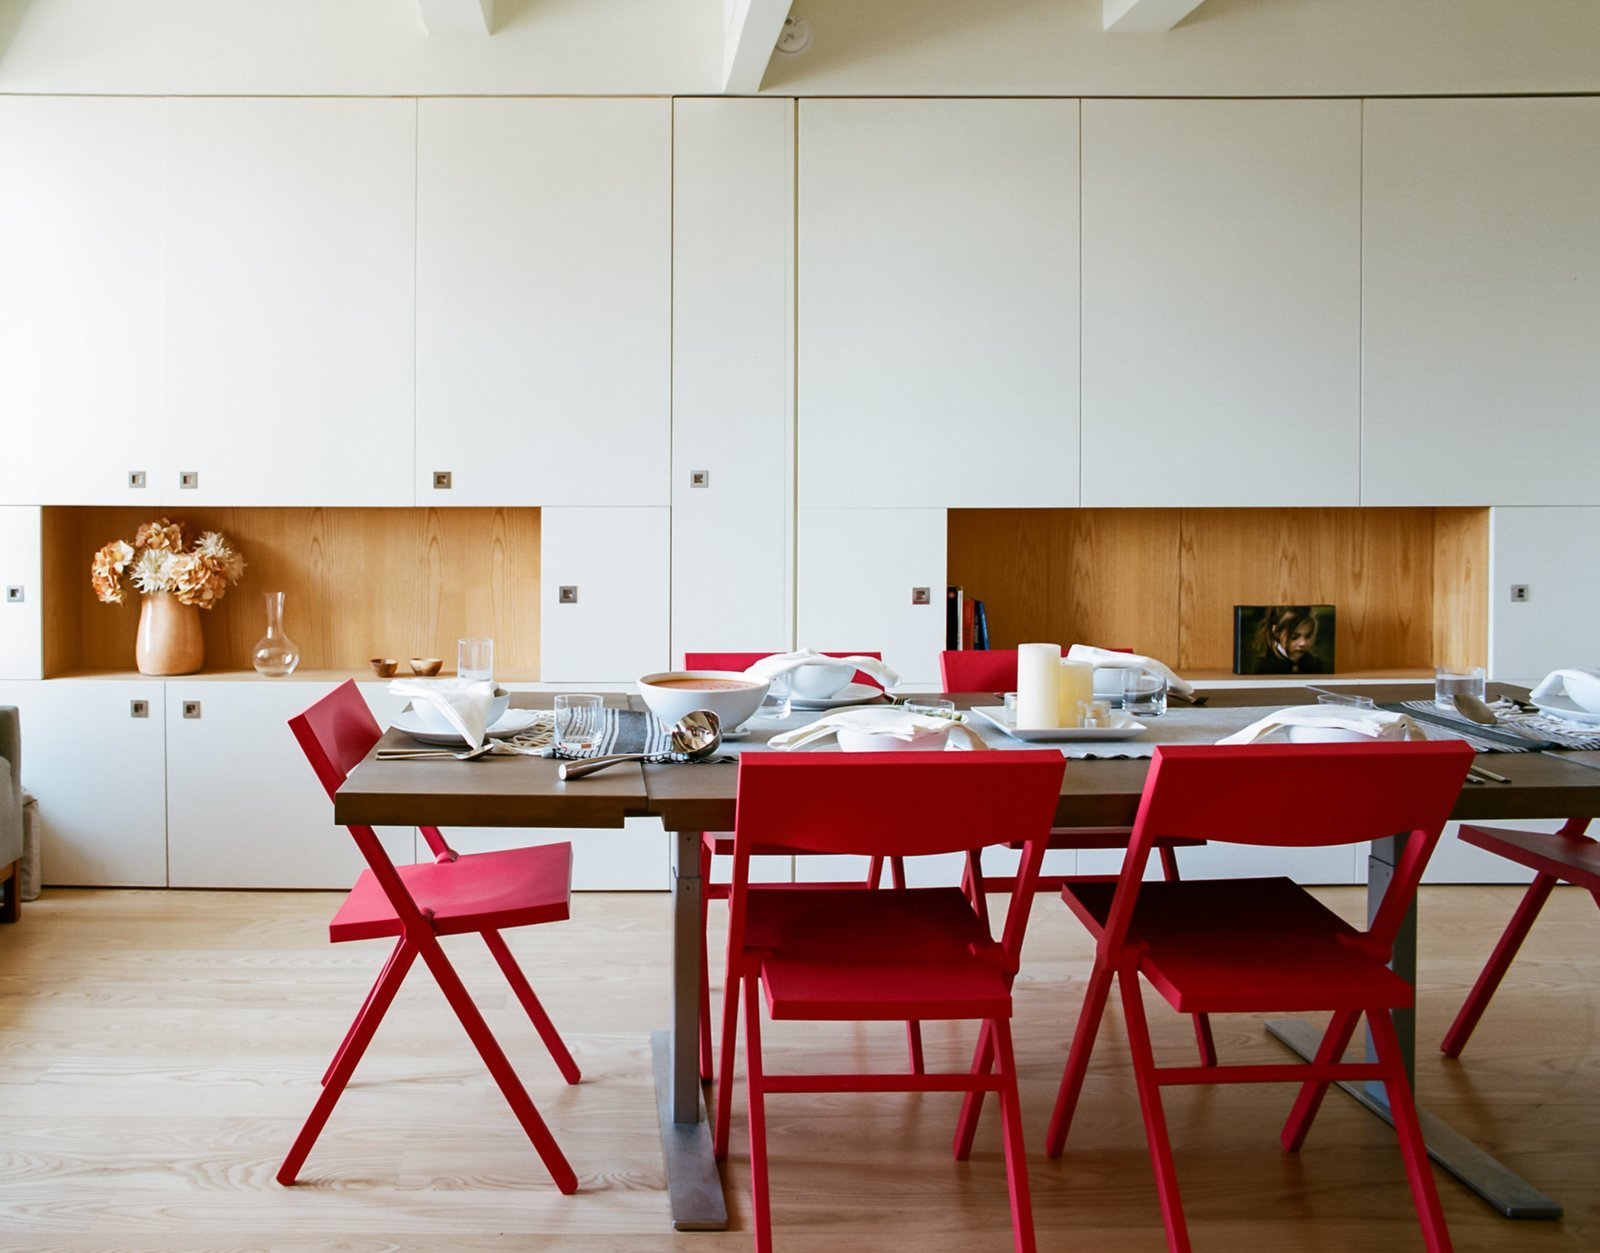 The red Piana folding chairs are by David Chipperfield for Alessi; Garneau custom-designed the millwork tabletop and stainless-steel legs.  Photo 6 of 9 in A Pivoting Wall Makes This Tiny Studio a Fit For Any Occasion